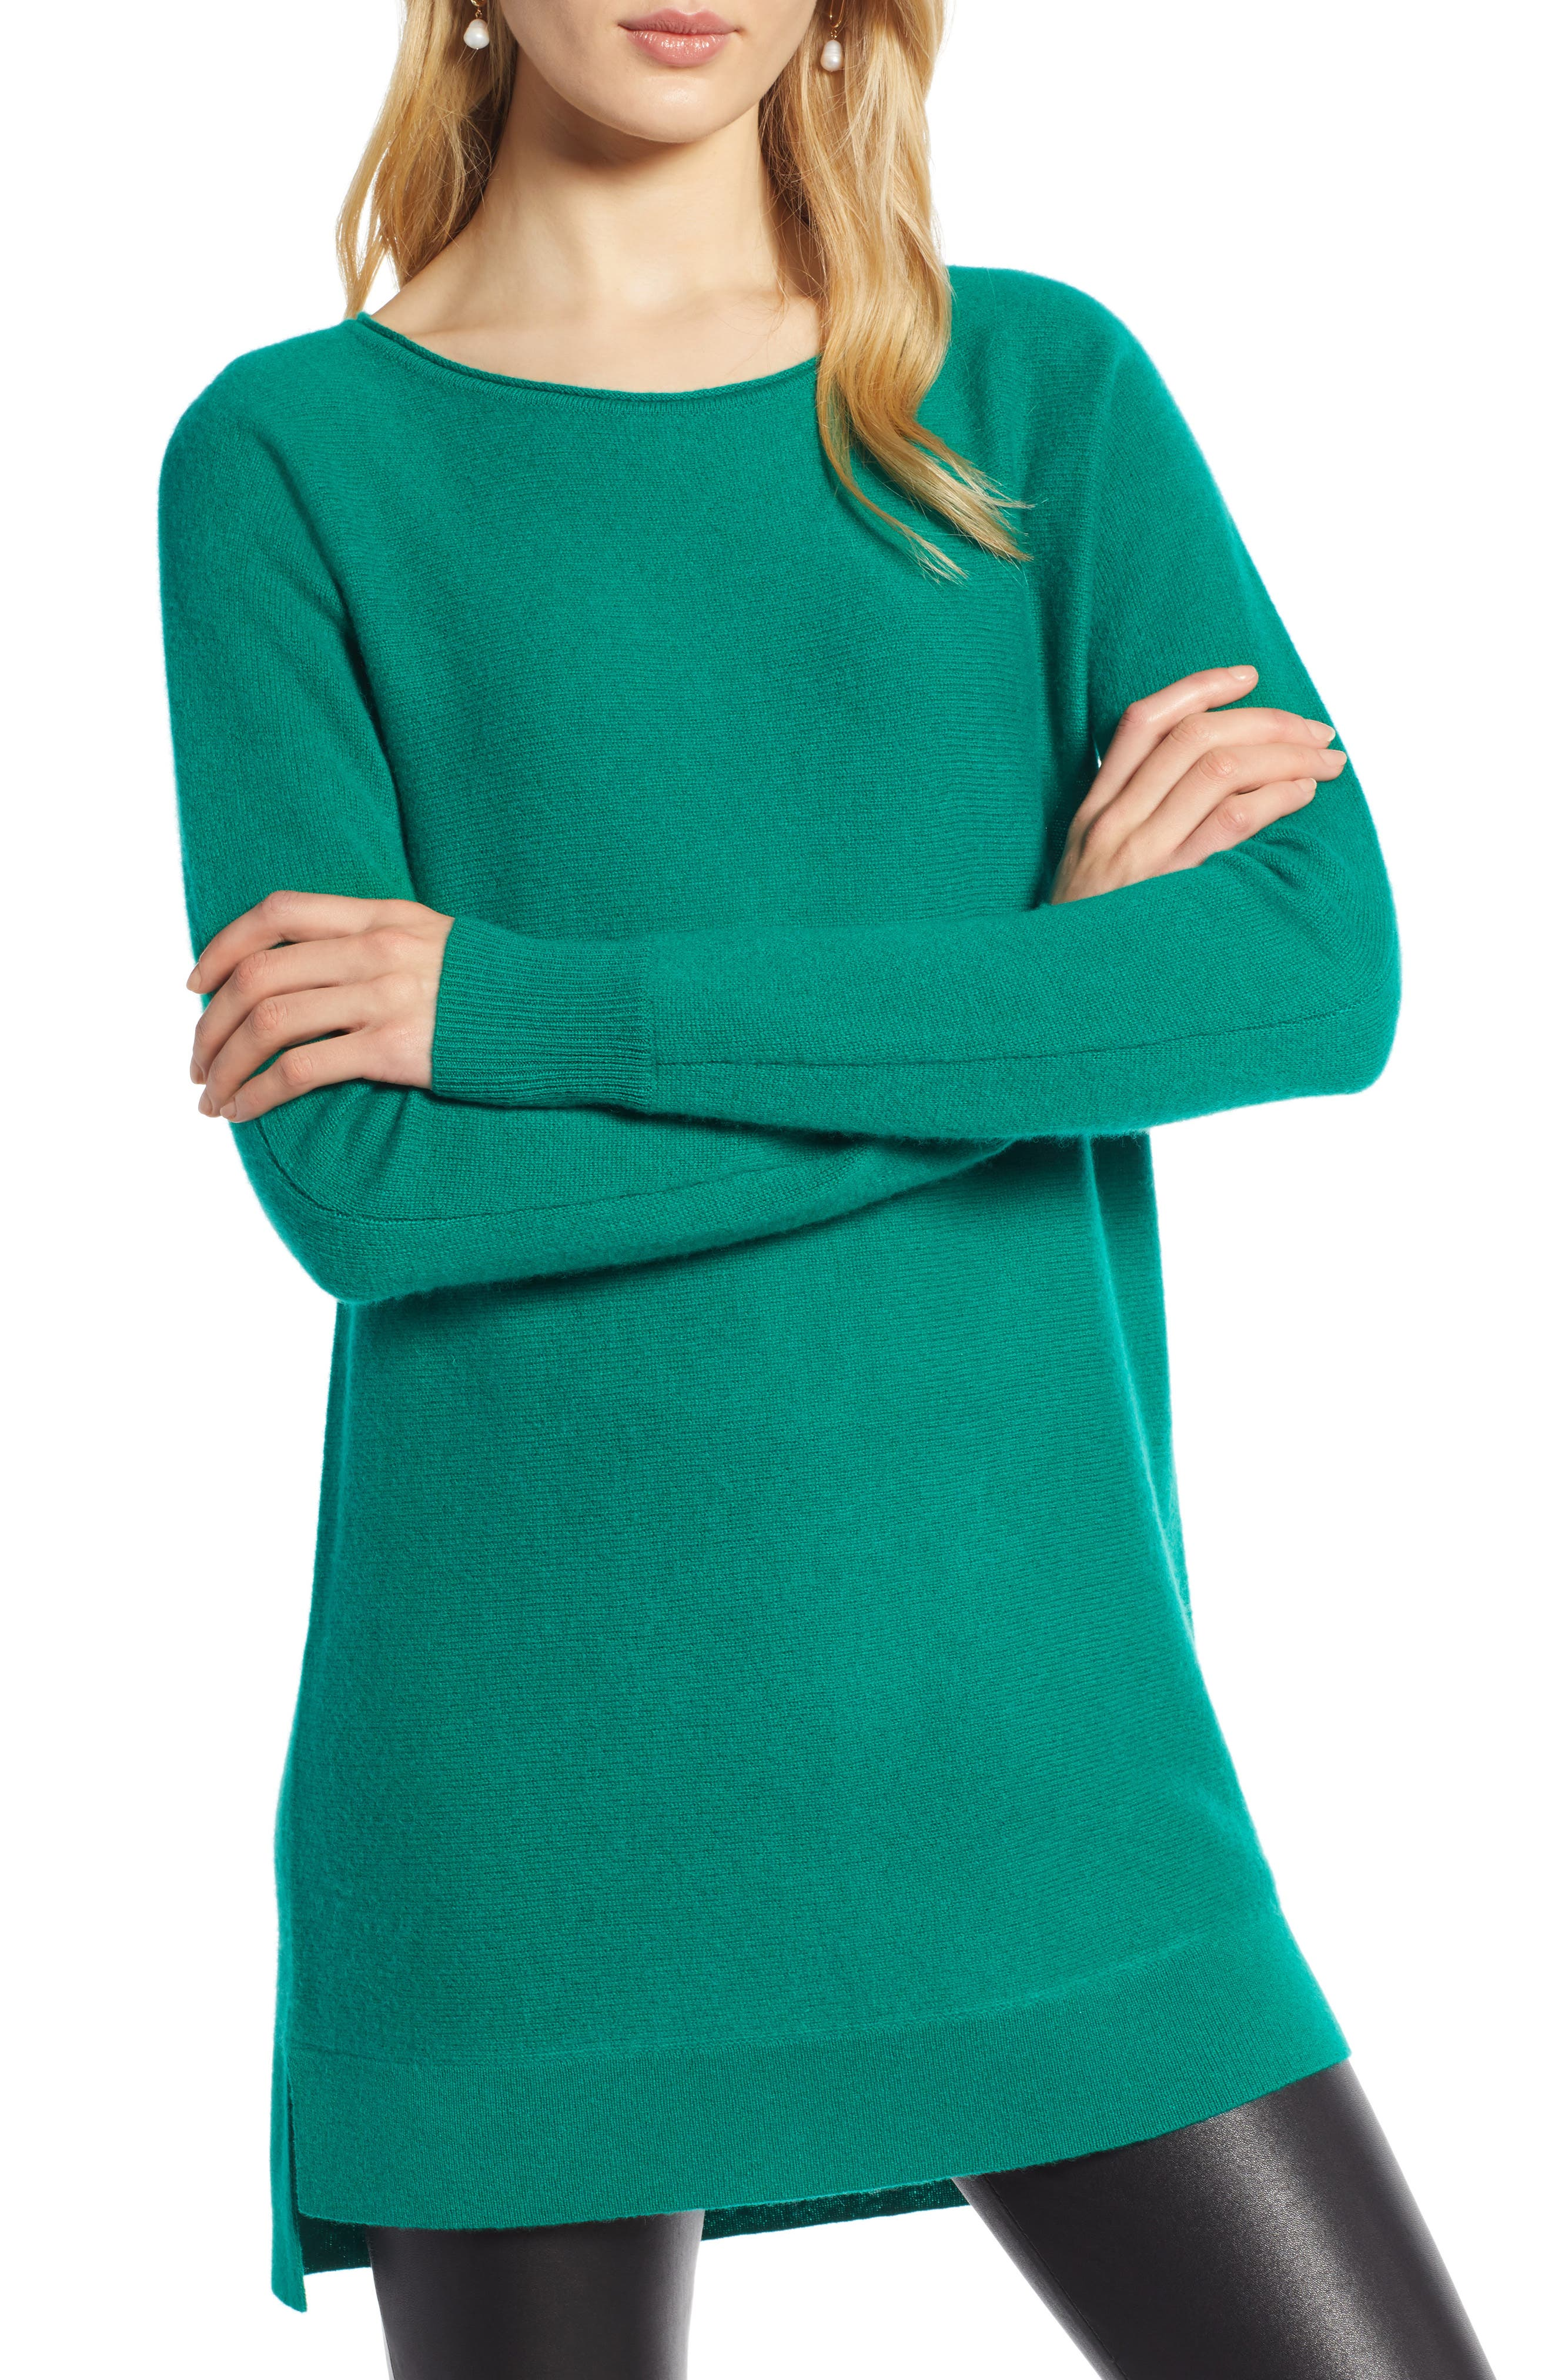 High/Low Wool & Cashmere Tunic Sweater,                             Main thumbnail 1, color,                             GREEN ULTRA